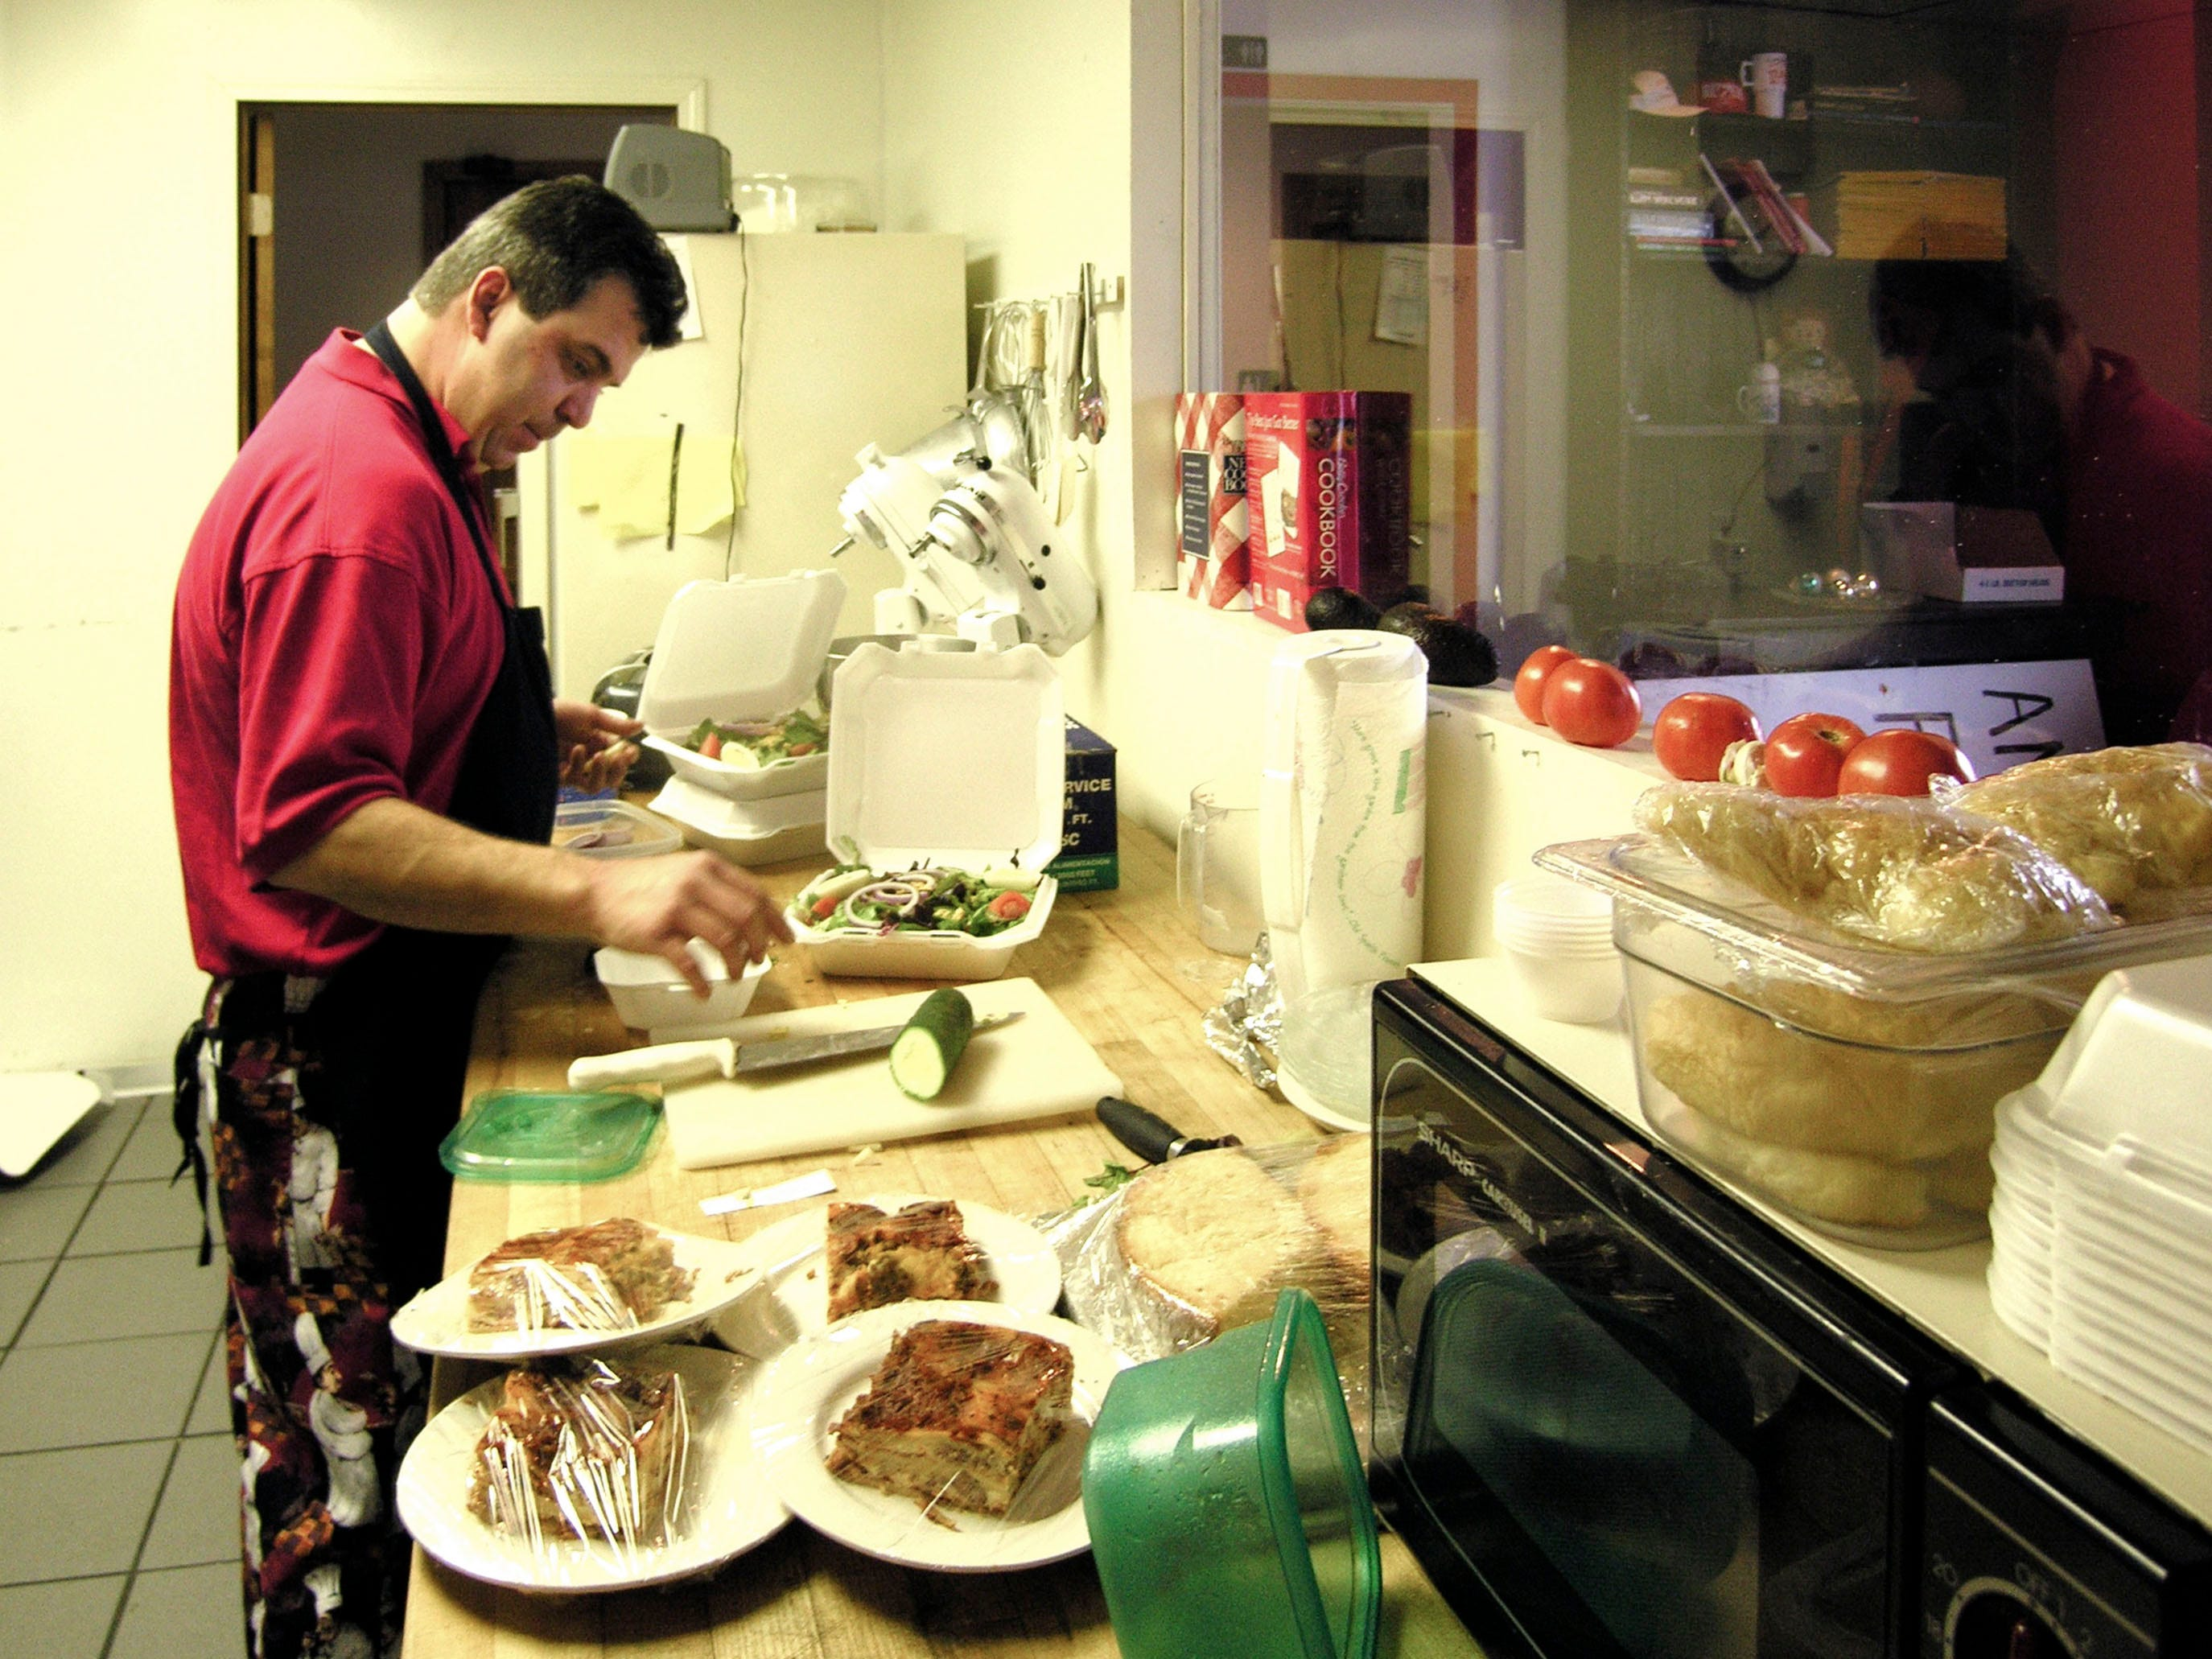 in 2006, Bill Goldman prepares some take-out orders at America Fresh, an Inskip area café owned by his brother, Bryant Goldman and Teresa England.